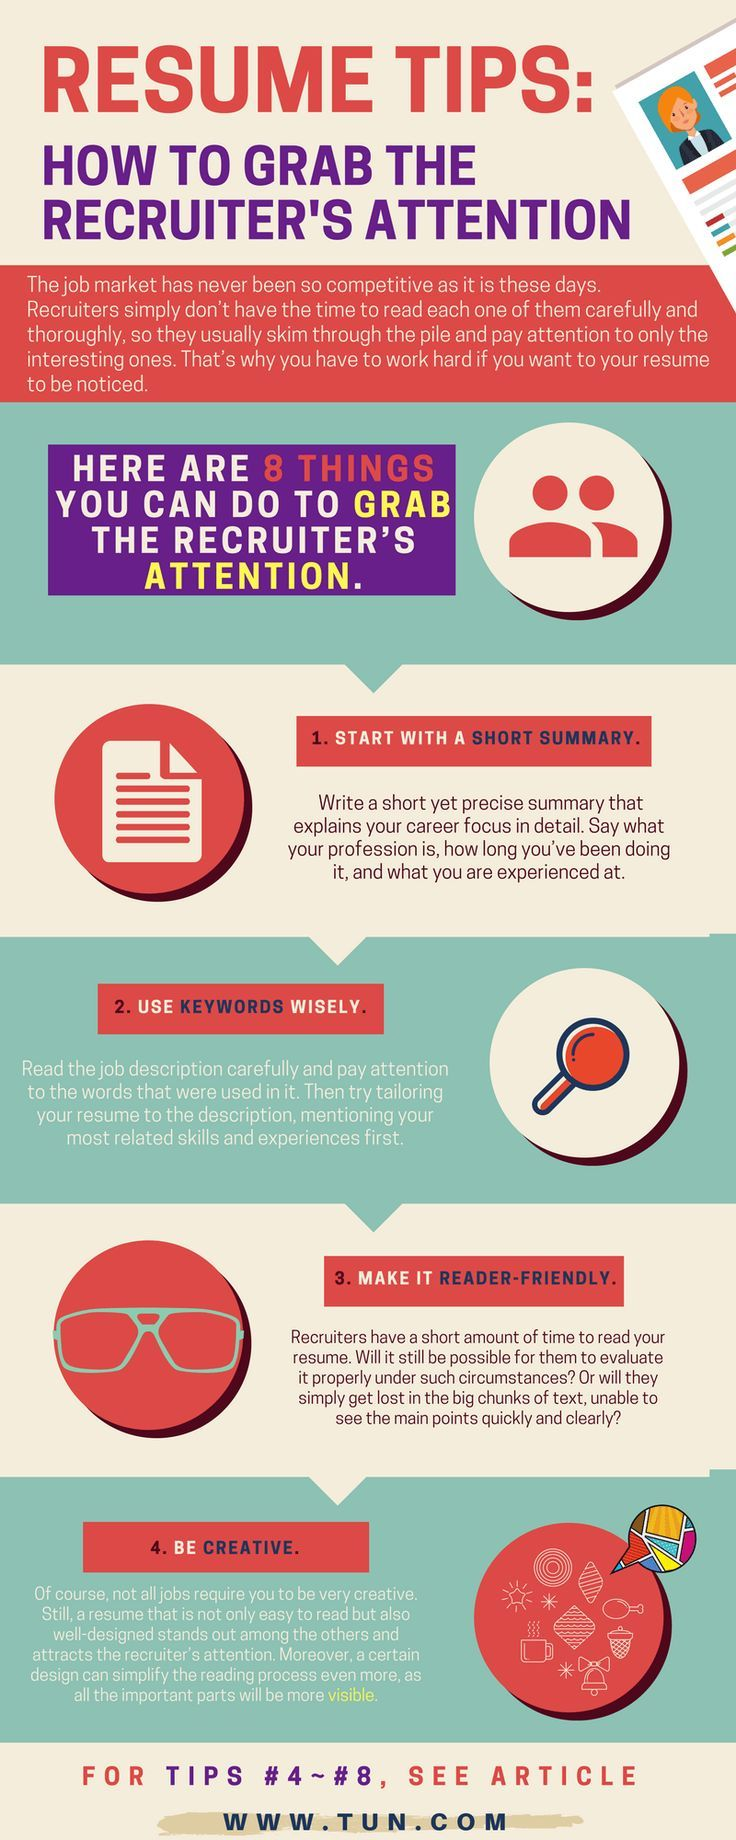 25 Unique Resume Tips Ideas On Pinterest Resume Ideas Resume